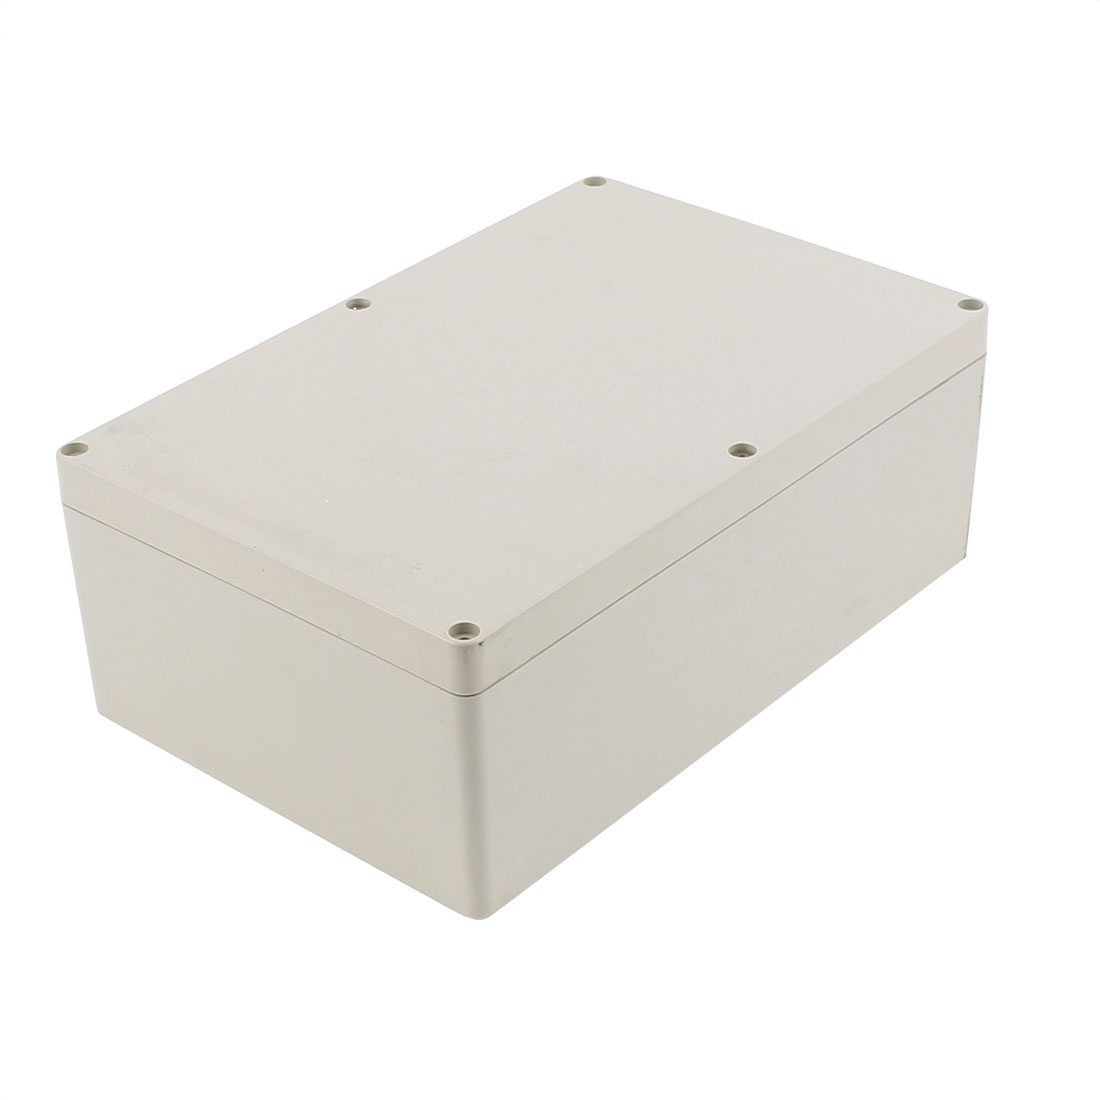 240 x 160 x 90mm Dustproof IP65 Junction Box Terminal Connecting Box Enclosure